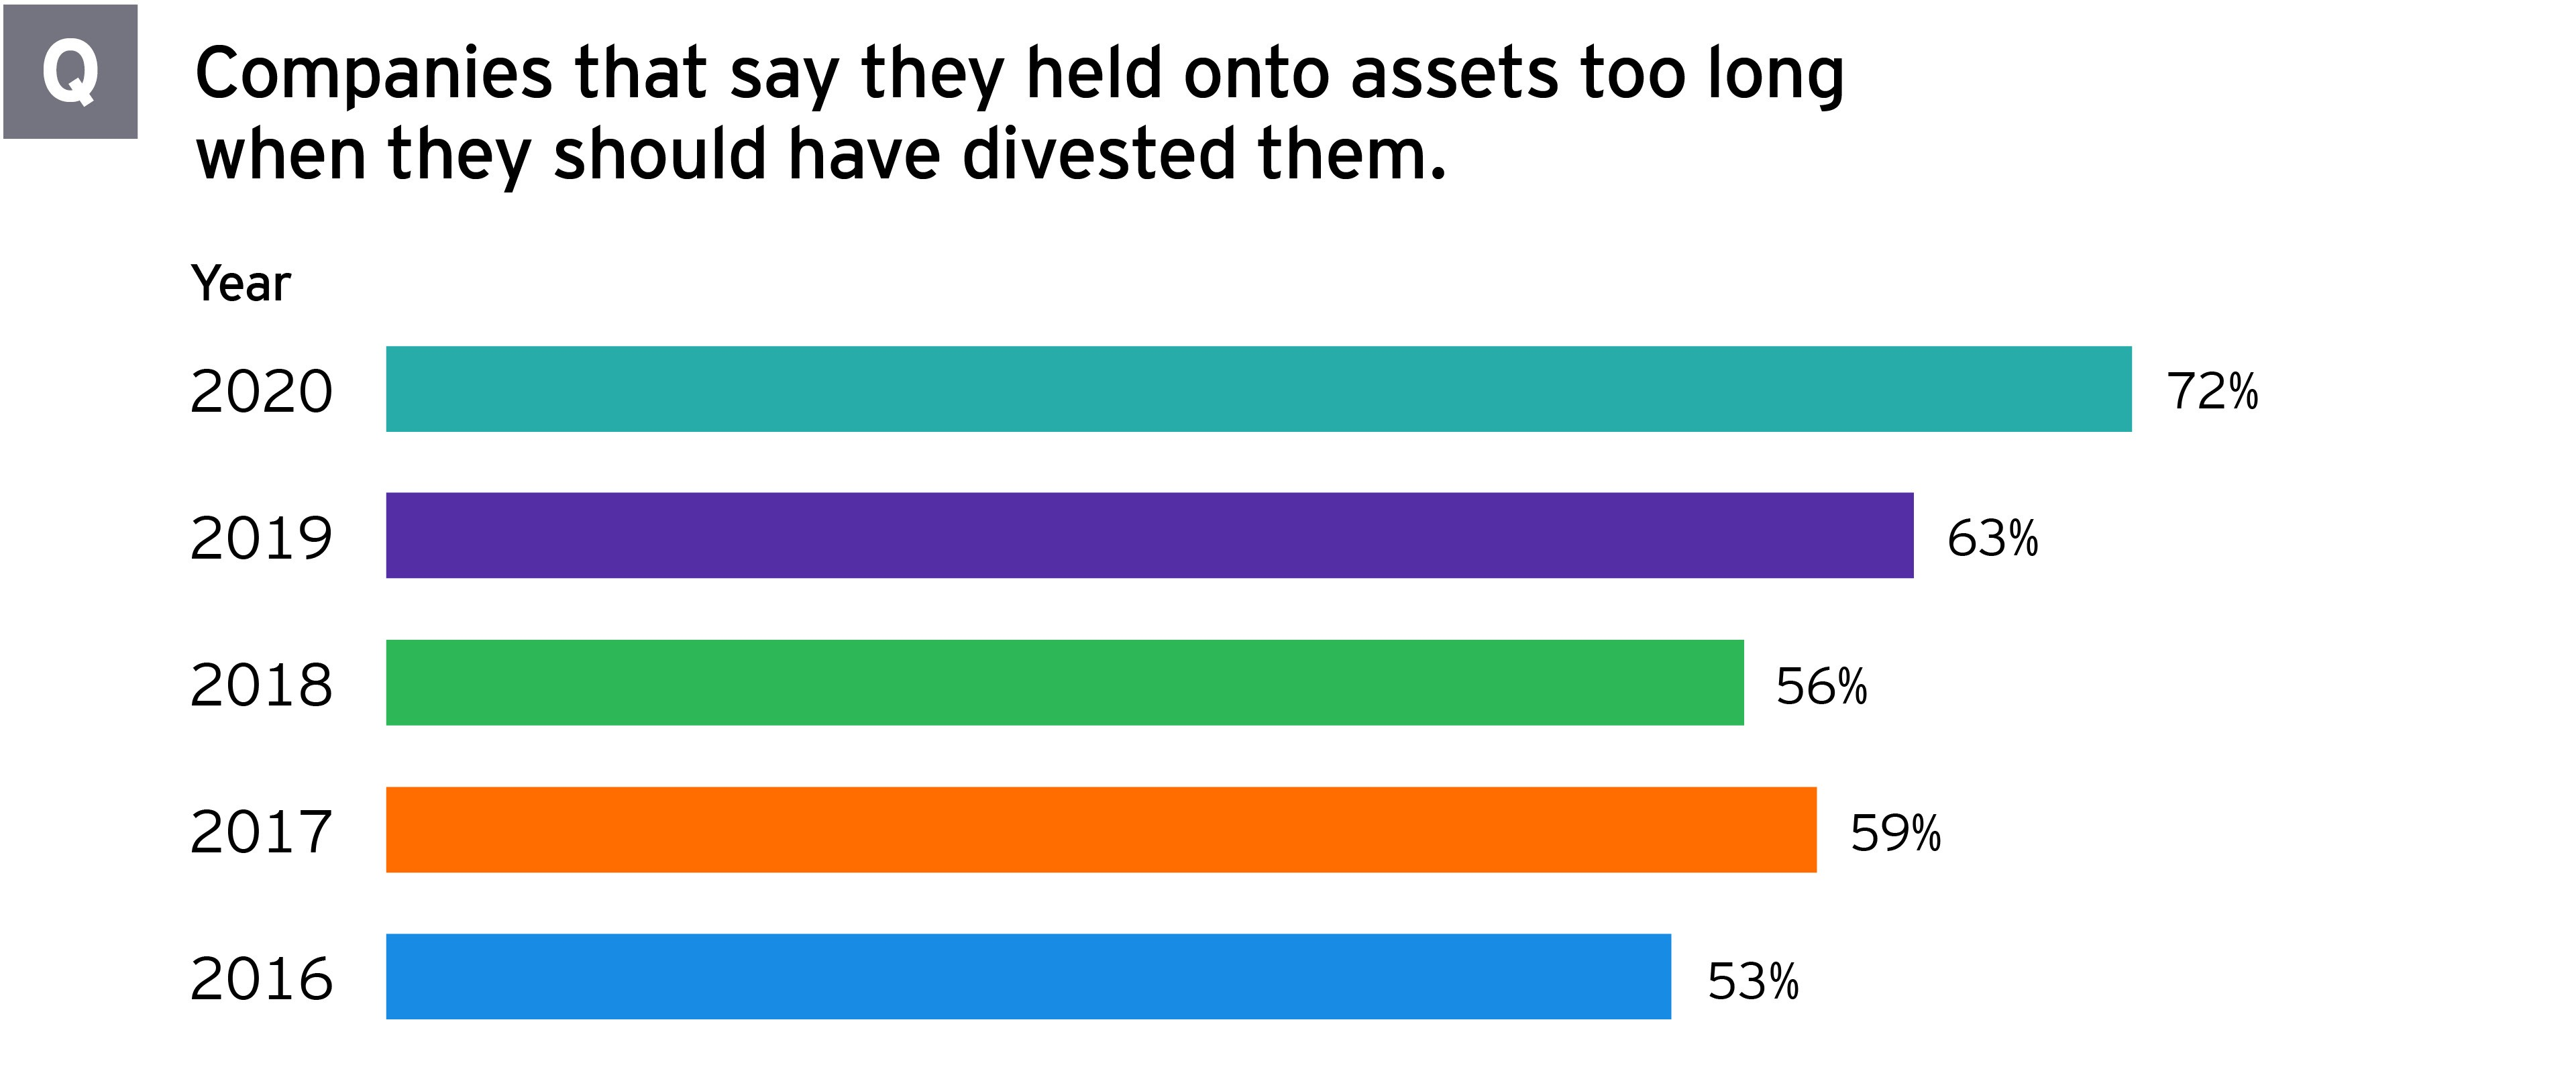 Divestment study responses companies say held onto assets too long